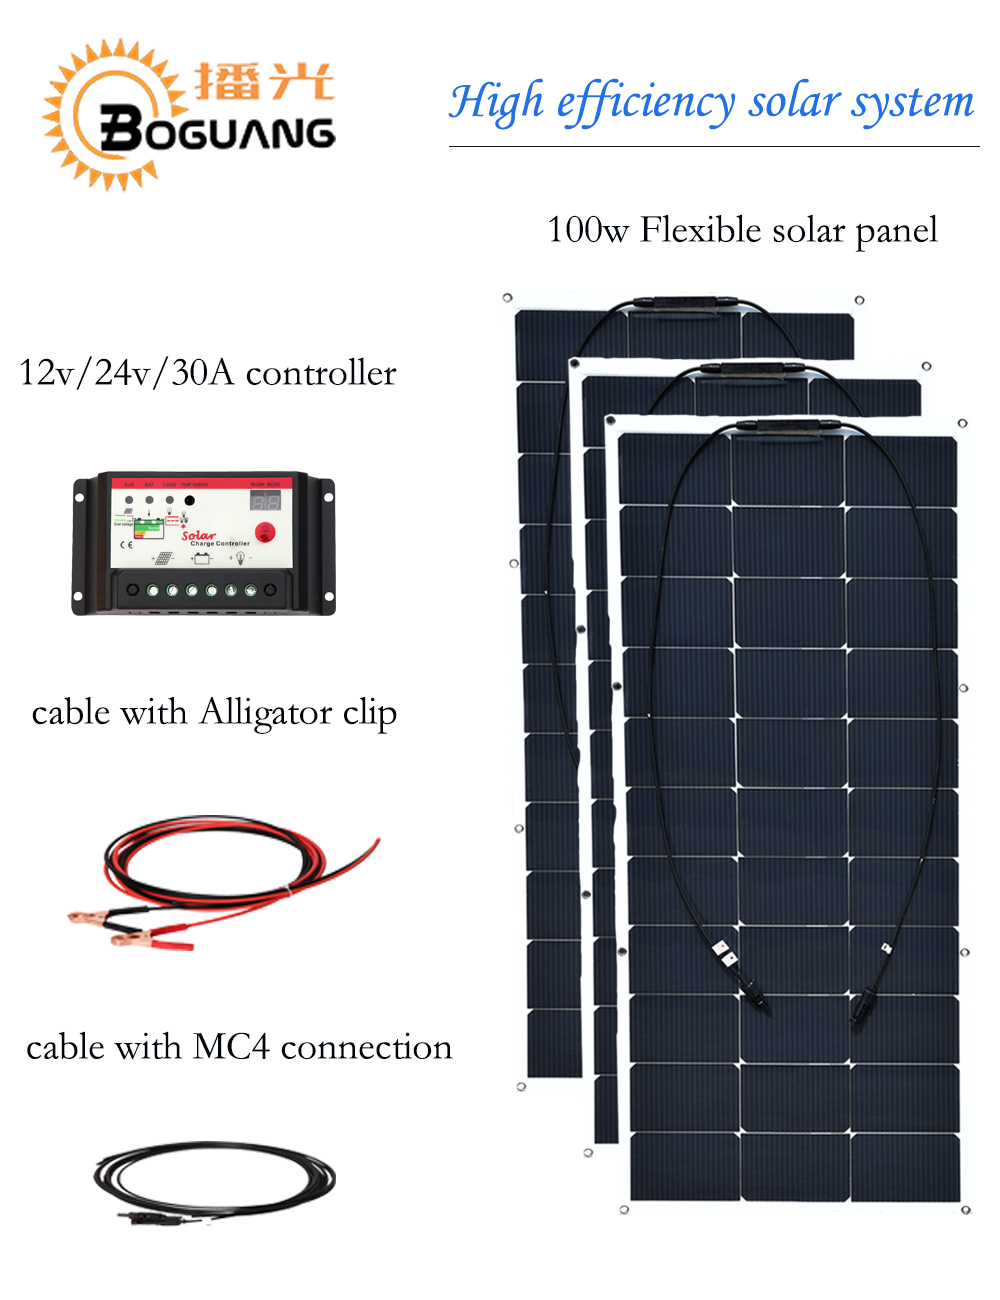 все цены на Boguang 300w solar system 100w flexible solar panel 30A controller cable for 12v battery RV yacht car boat camping tent light онлайн